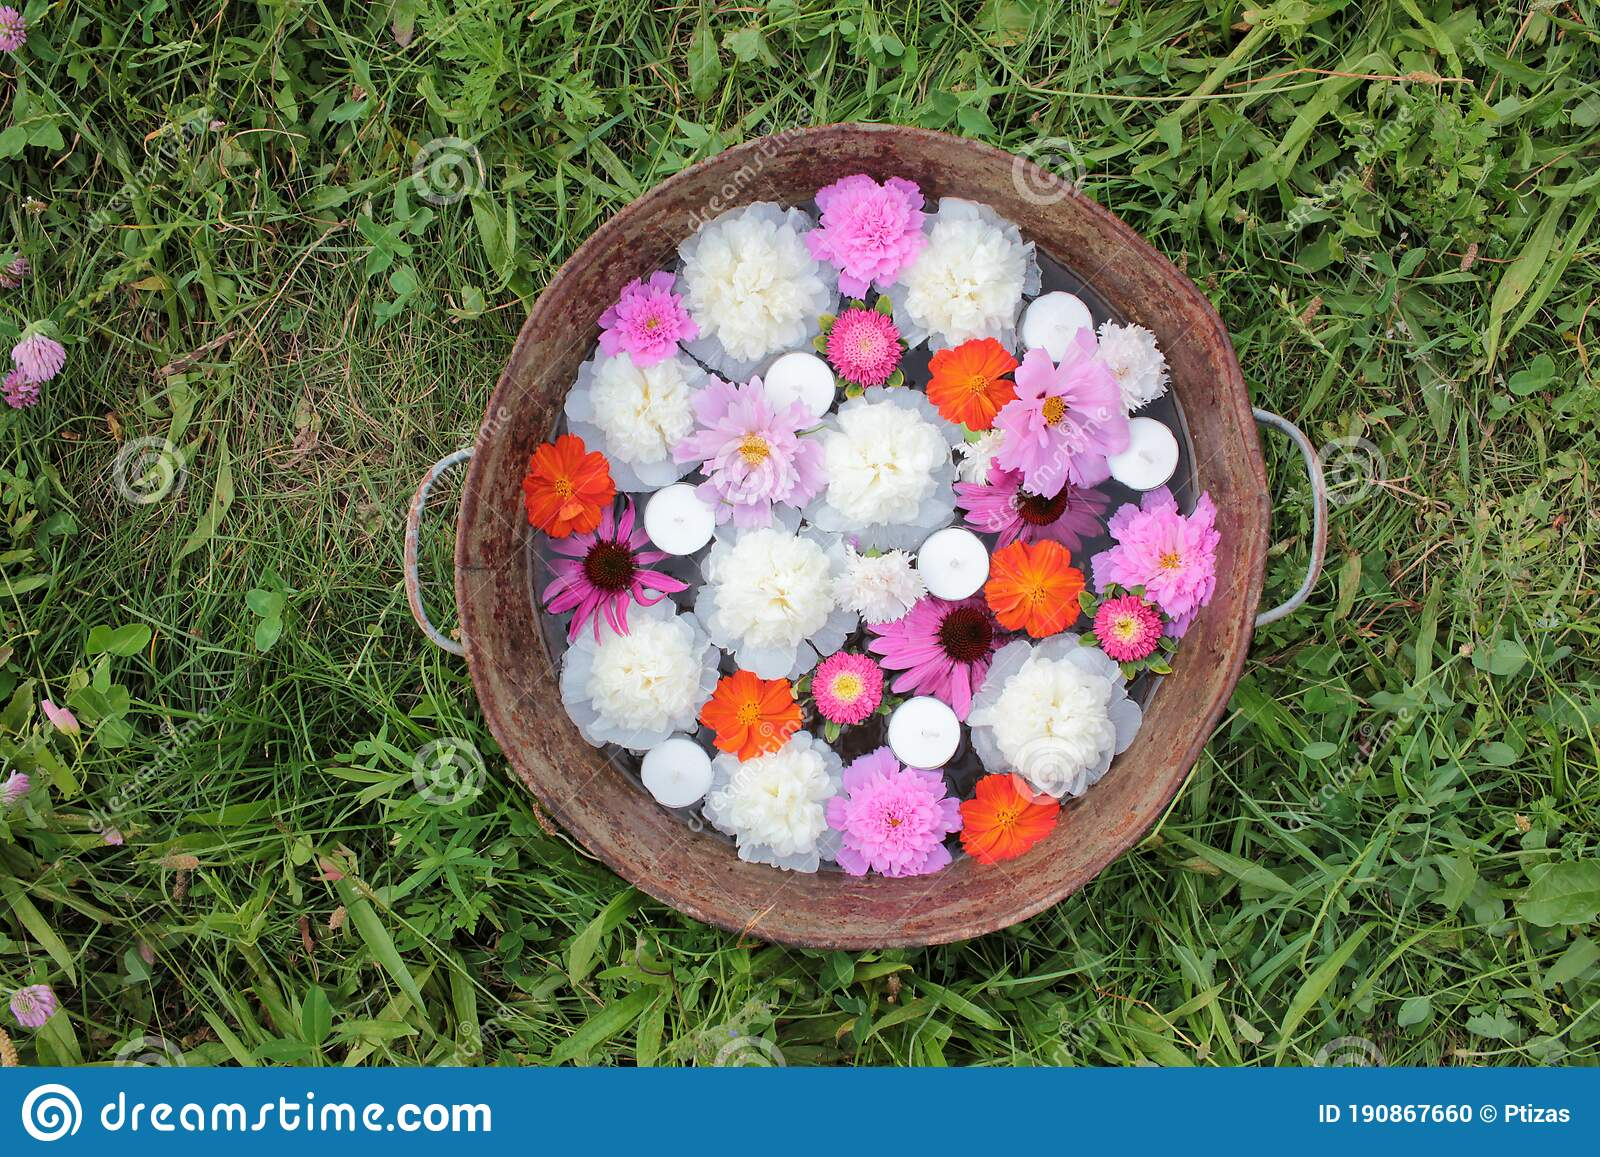 Floating Candles And Flowers In Old Zins Basin Summer Garden Party Outdoor Decor Ideas Stock Photo Image Of Grass Color 190867660